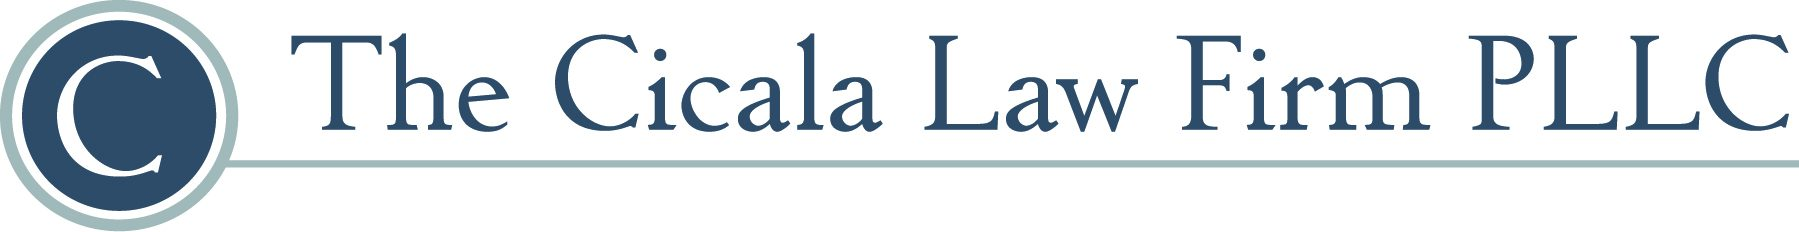 The Cicala Law Firm PLLC Profile Picture